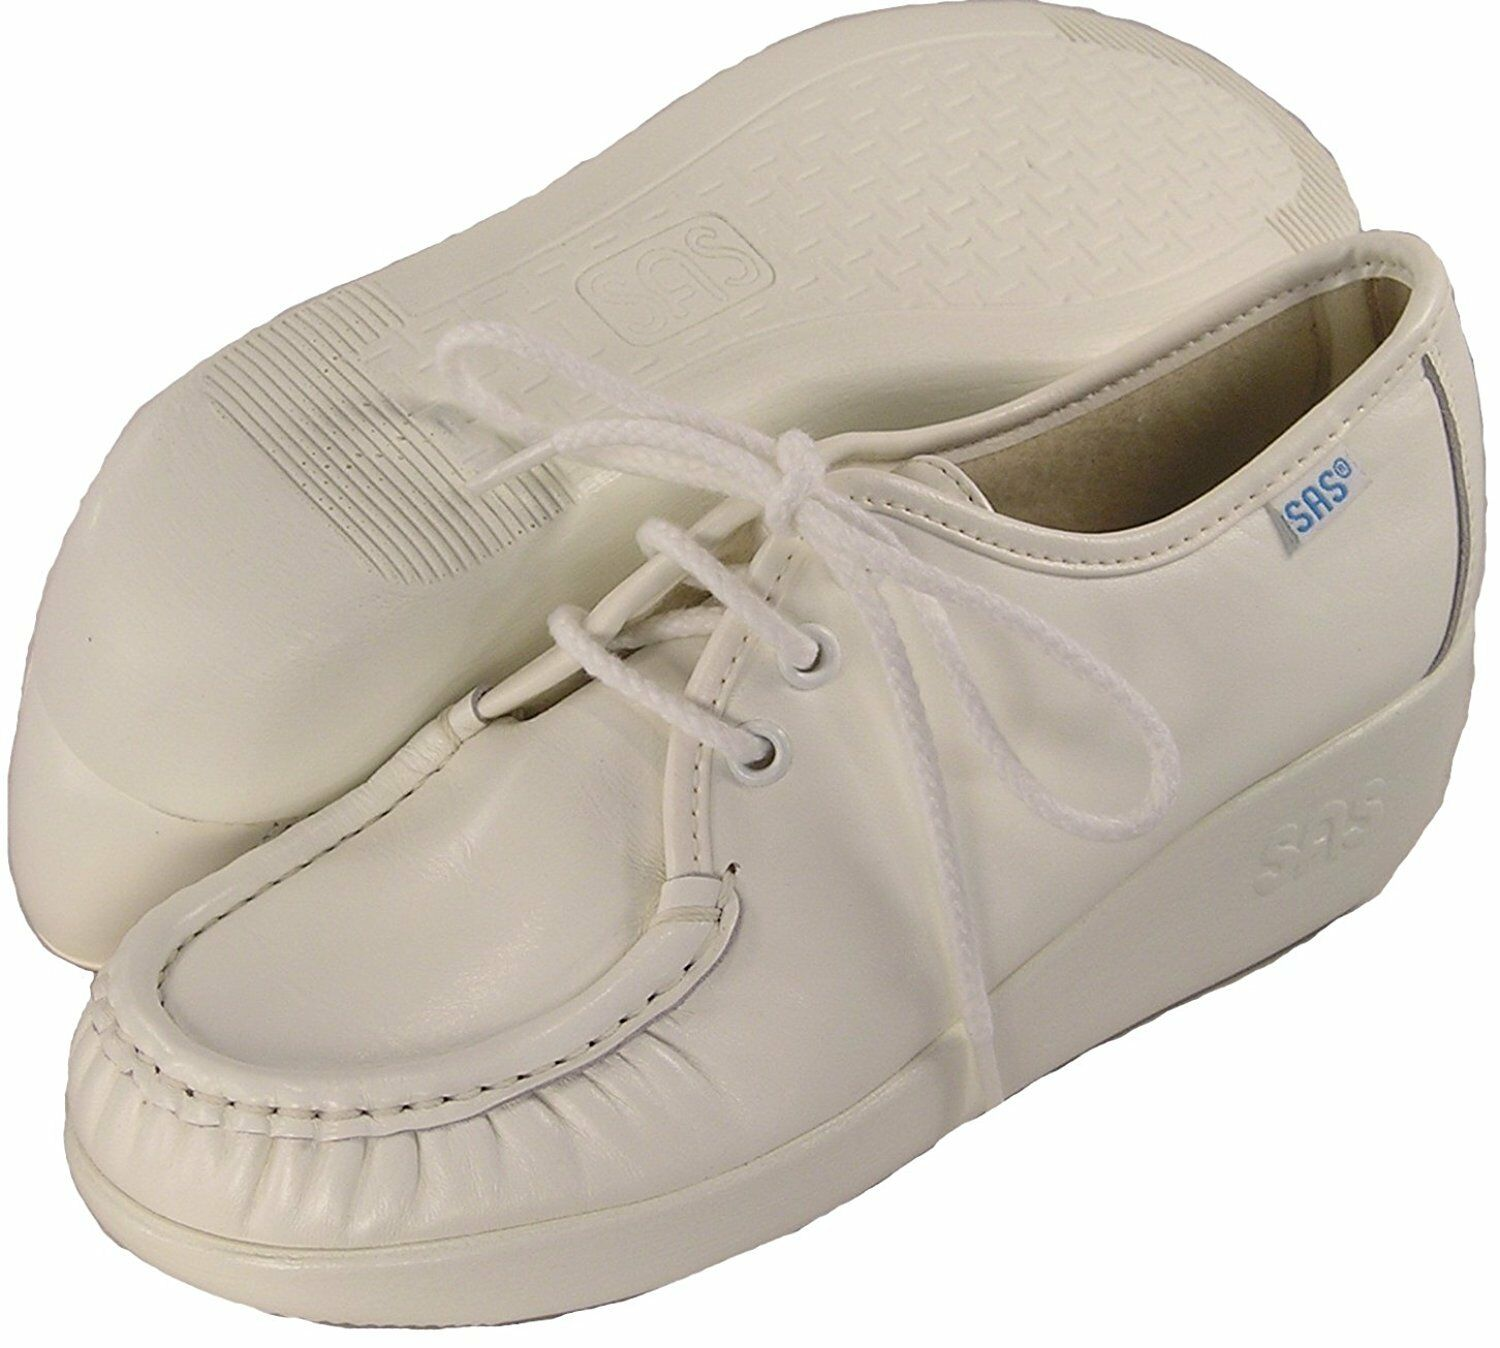 Original SAS Bounce White 0001-001 M Medium Women